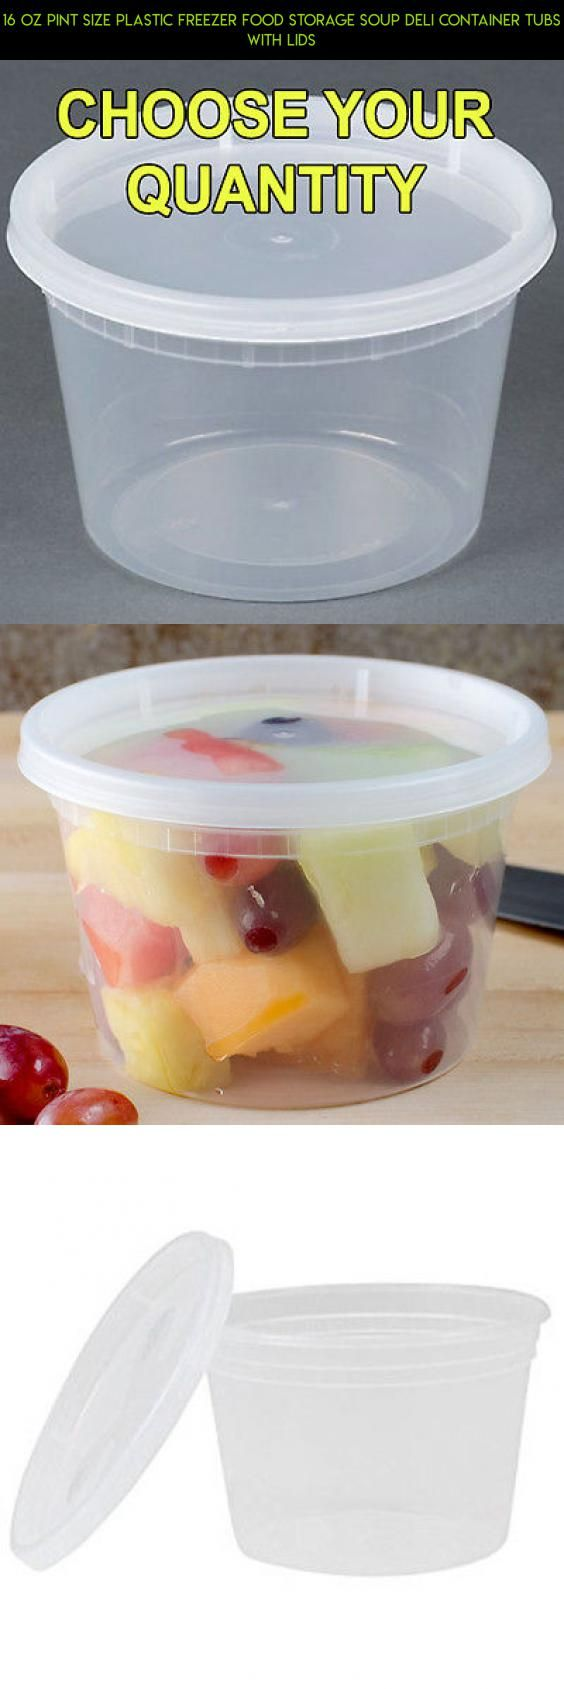 16 oz Pint Size Plastic Freezer Food Storage Soup Deli Container Tubs with Lids #with #camera #gadgets #products #storage #fpv #shopping #kit #racing #lids #parts #plans #containers #tech #technology #drone